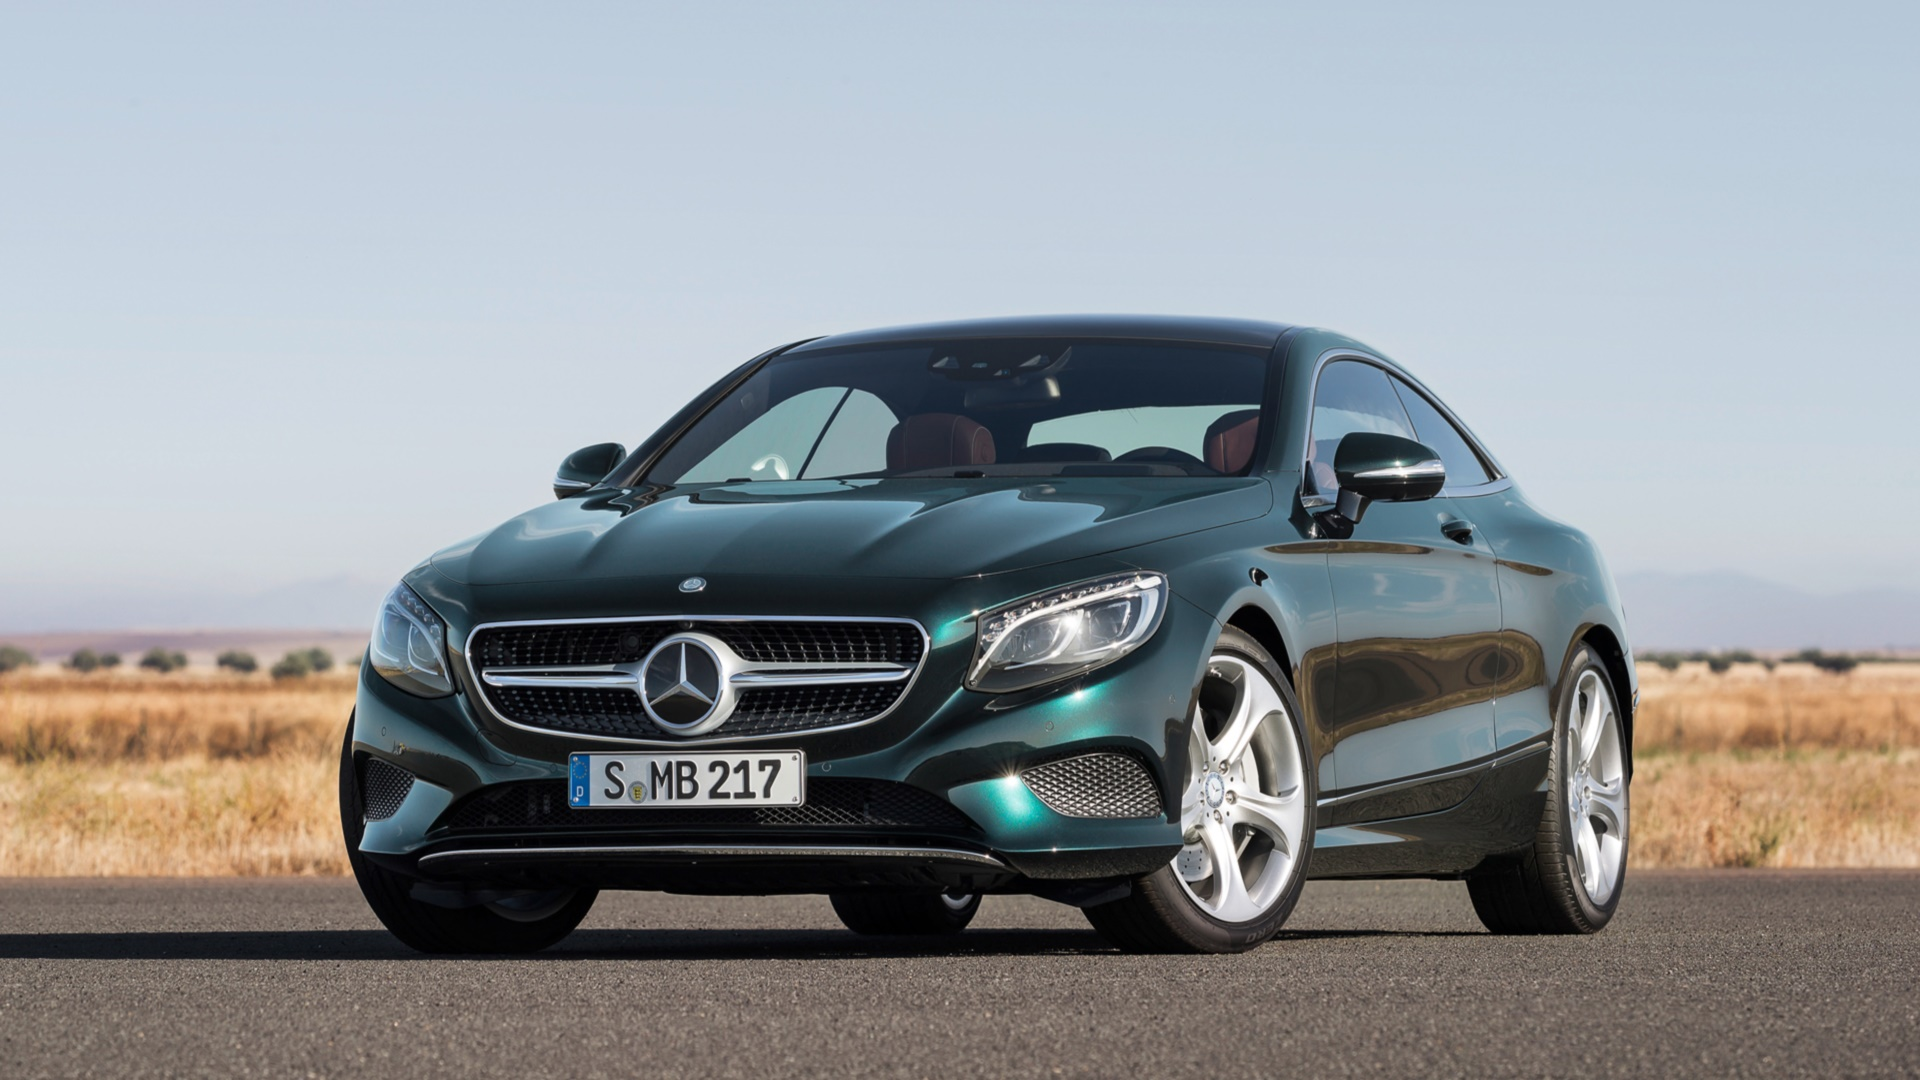 Mercedes Benz S Class Coupe Wallpapers Pictures Images